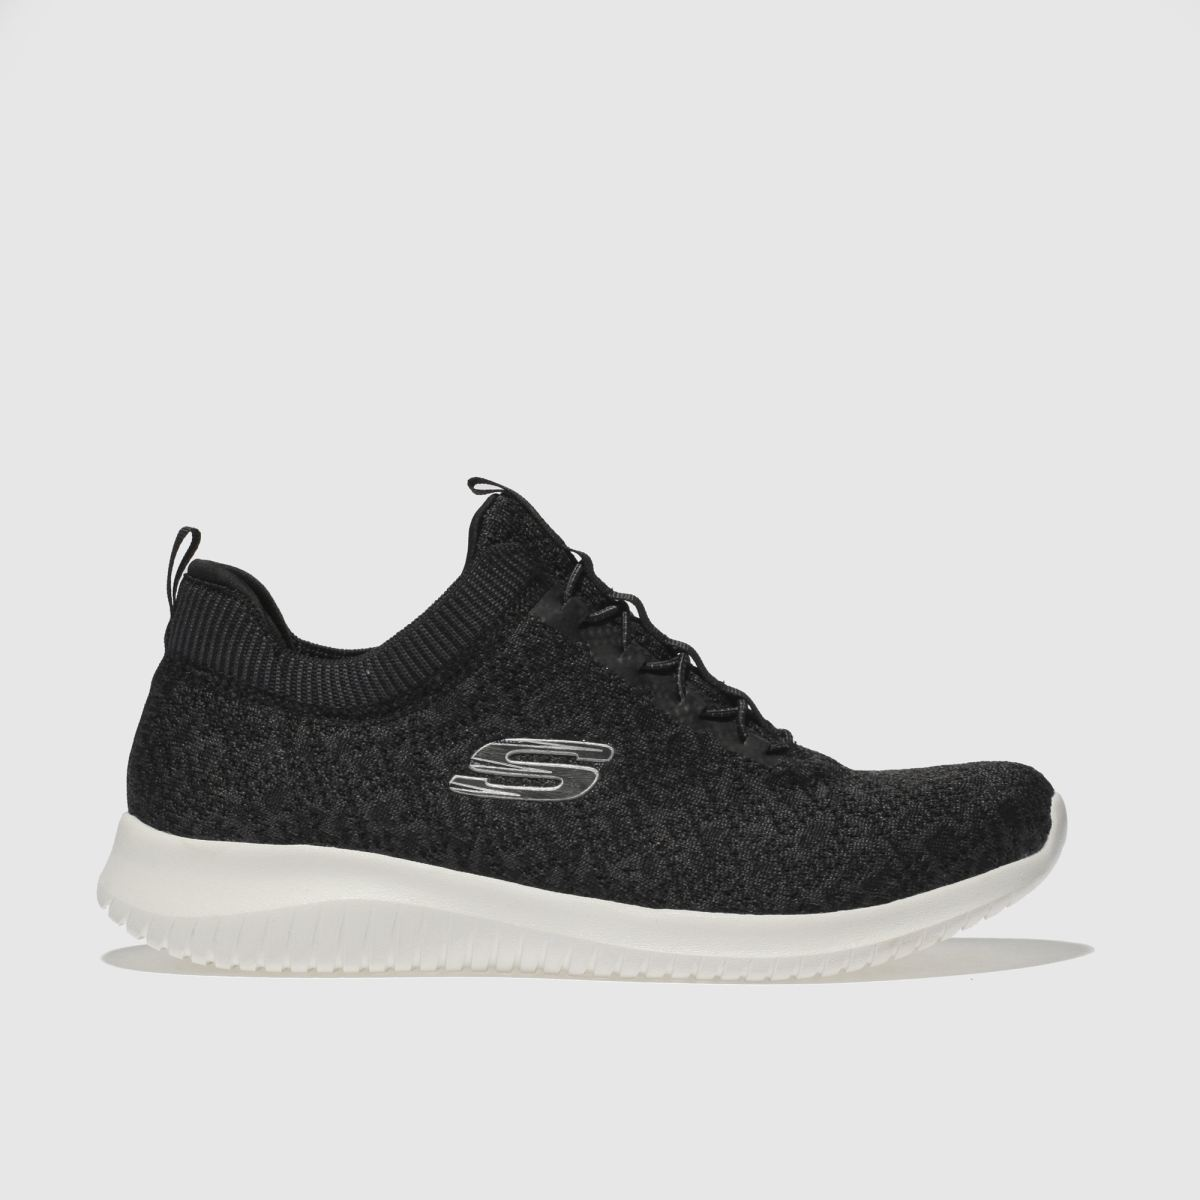 Skechers Black & White Ultra Flex Trainers